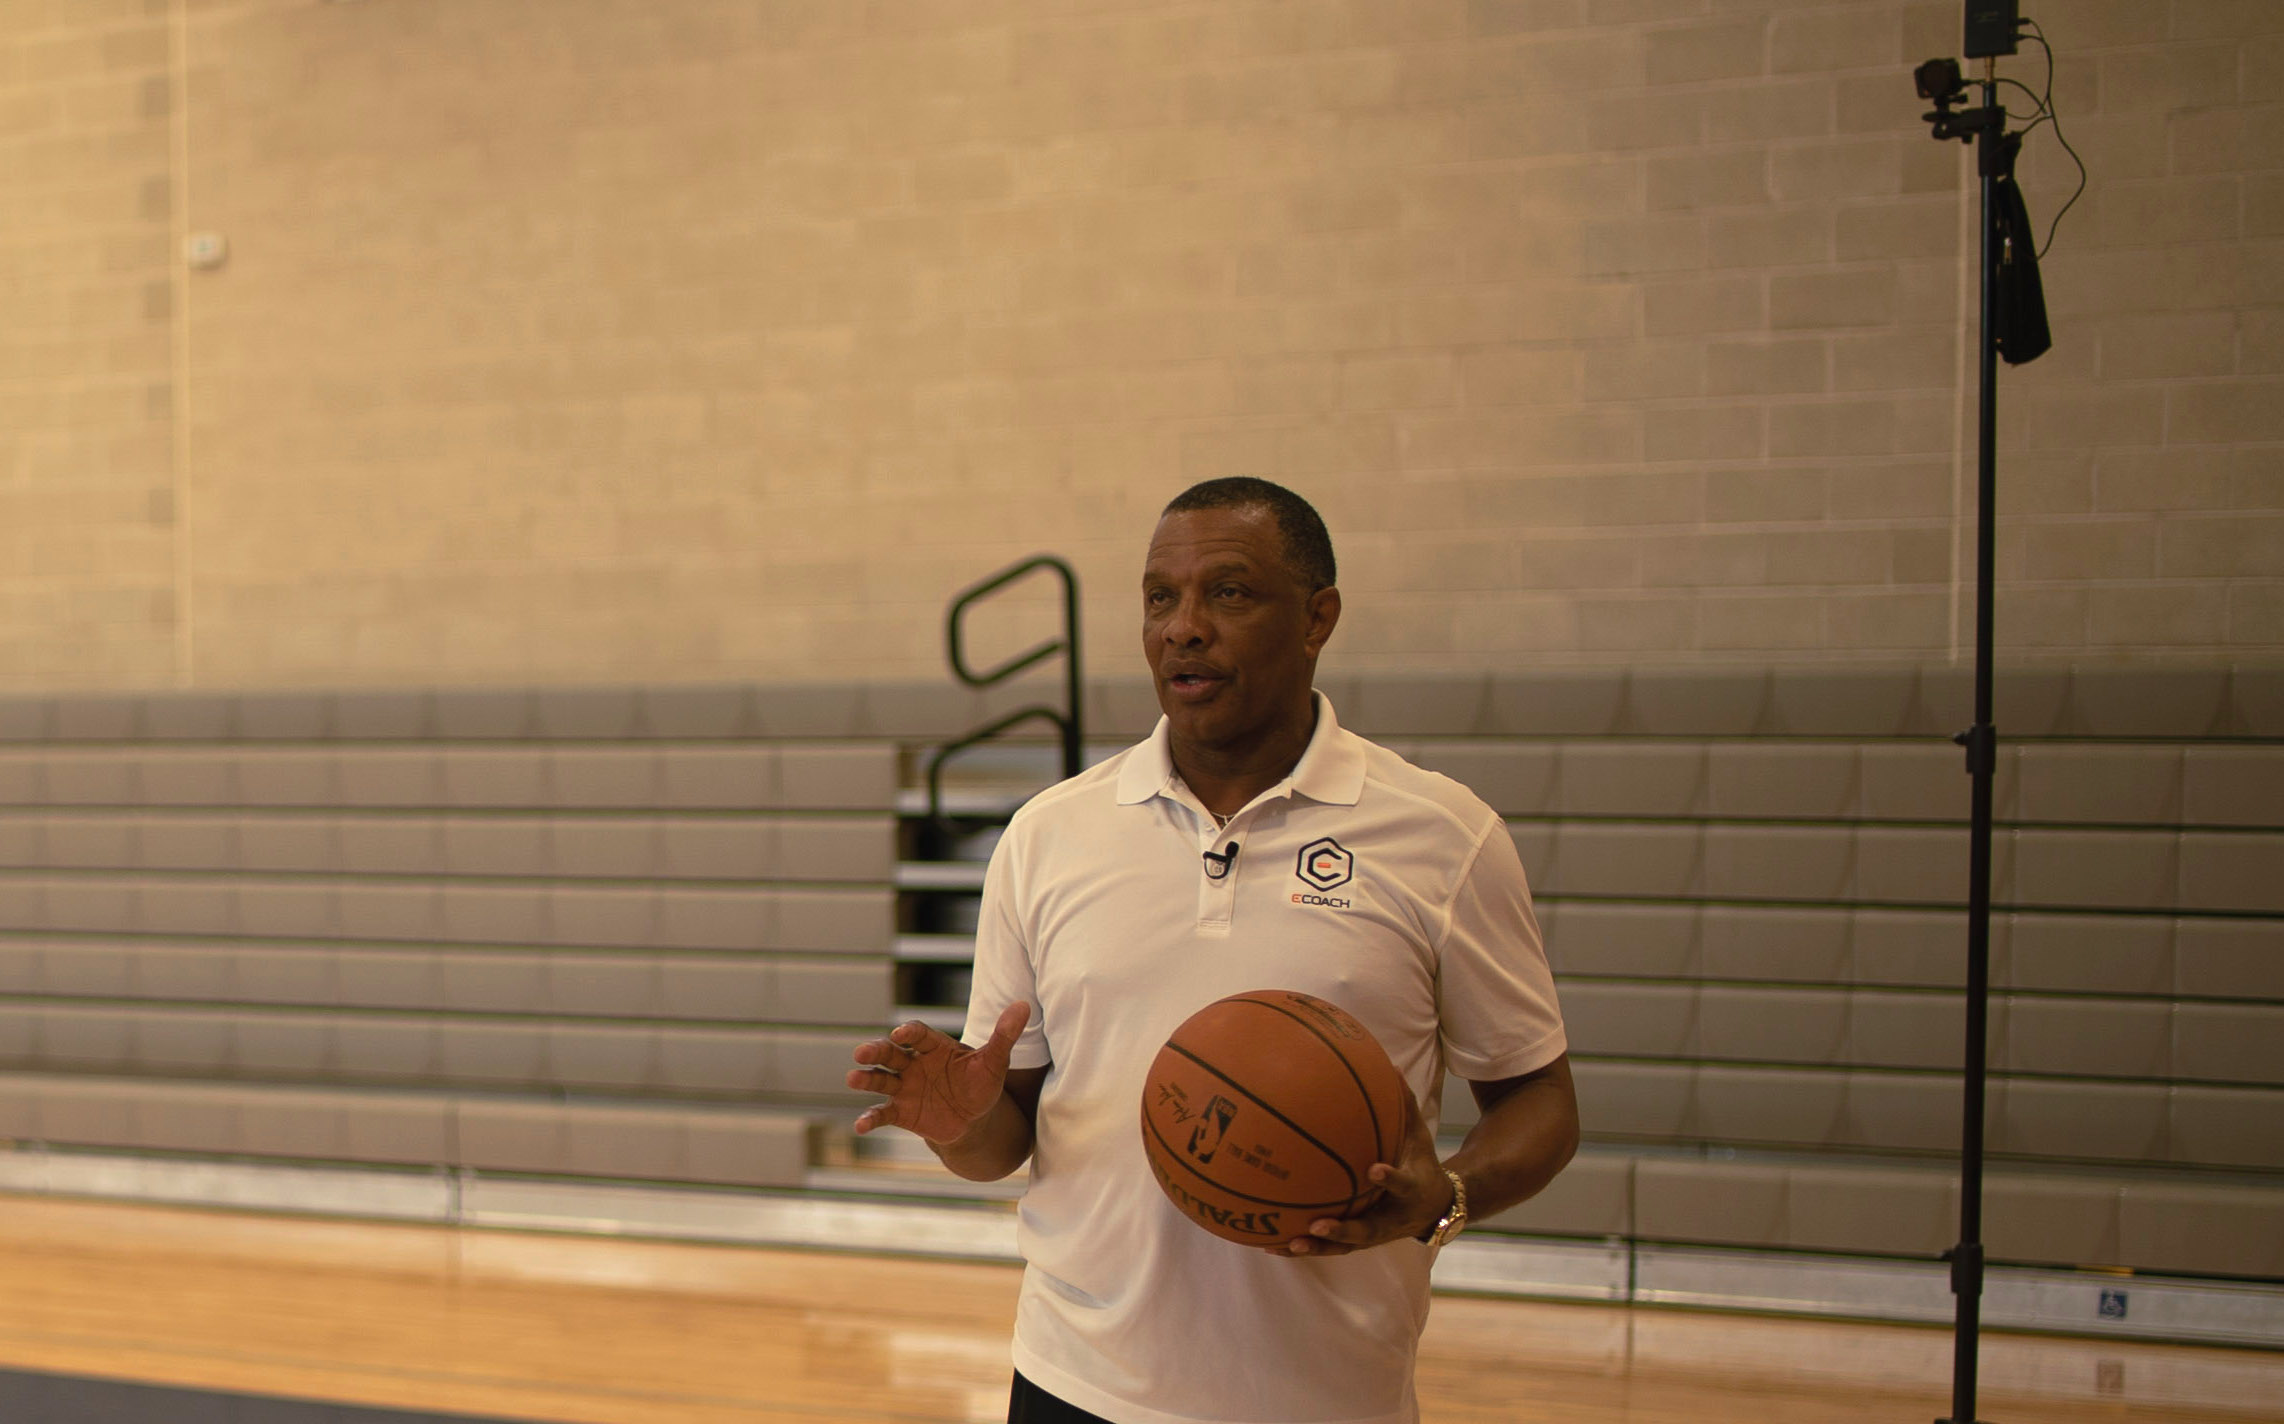 Alvin Gentry, New Orleans Pelicans Head Coach